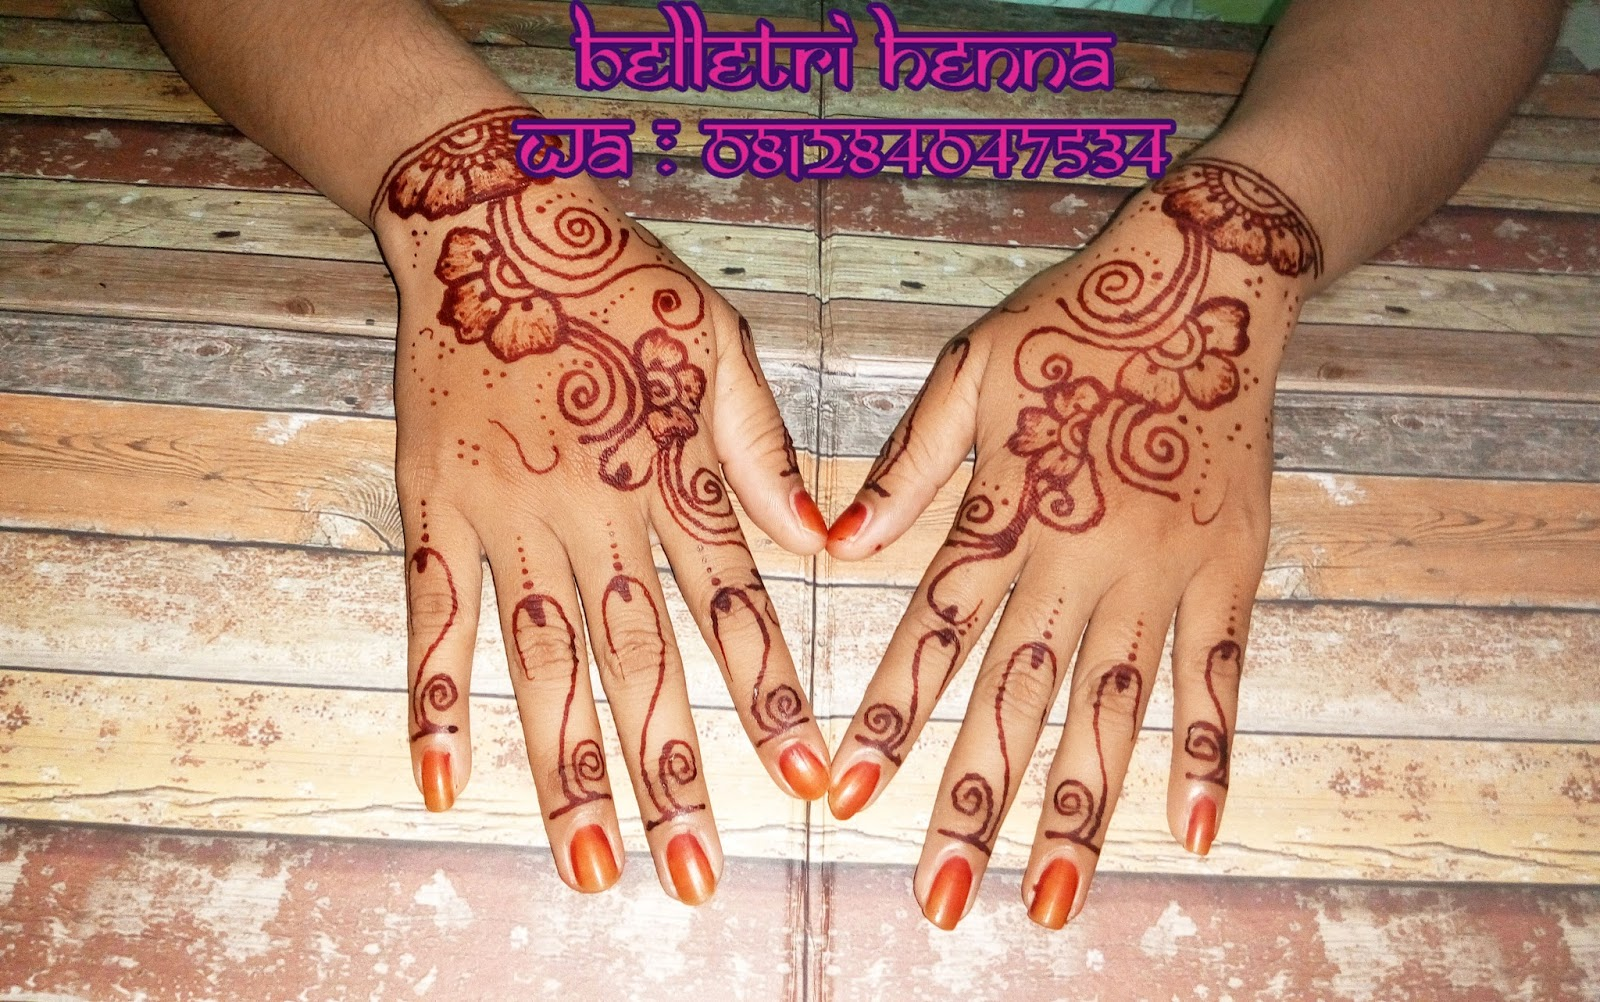 BELLETRI HENNA